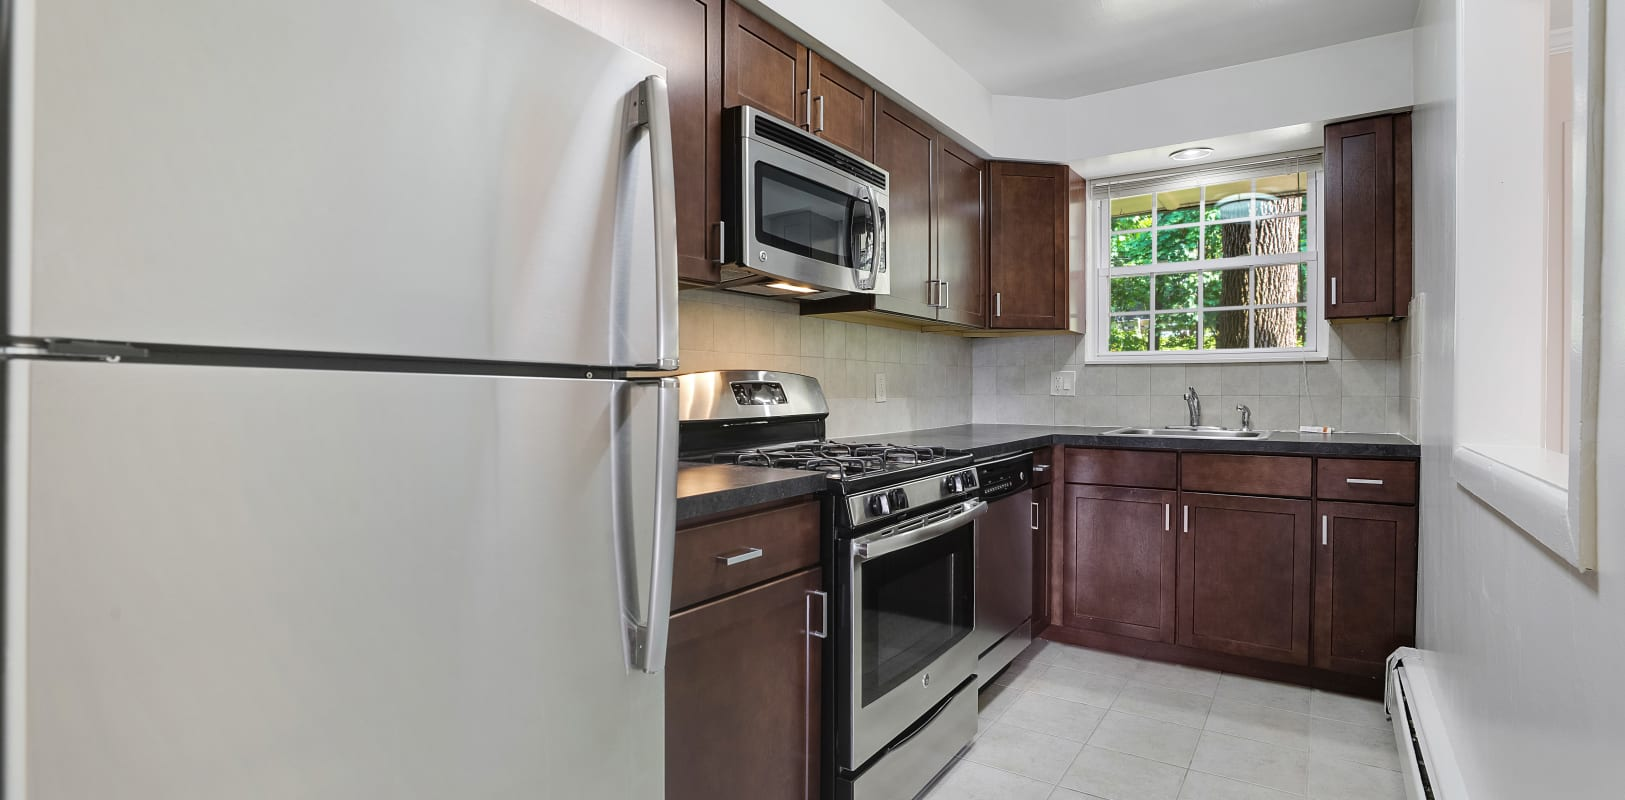 Clean kitchen with stainless steel appliances at Parkway East Apartments in Caldwell, New Jersey